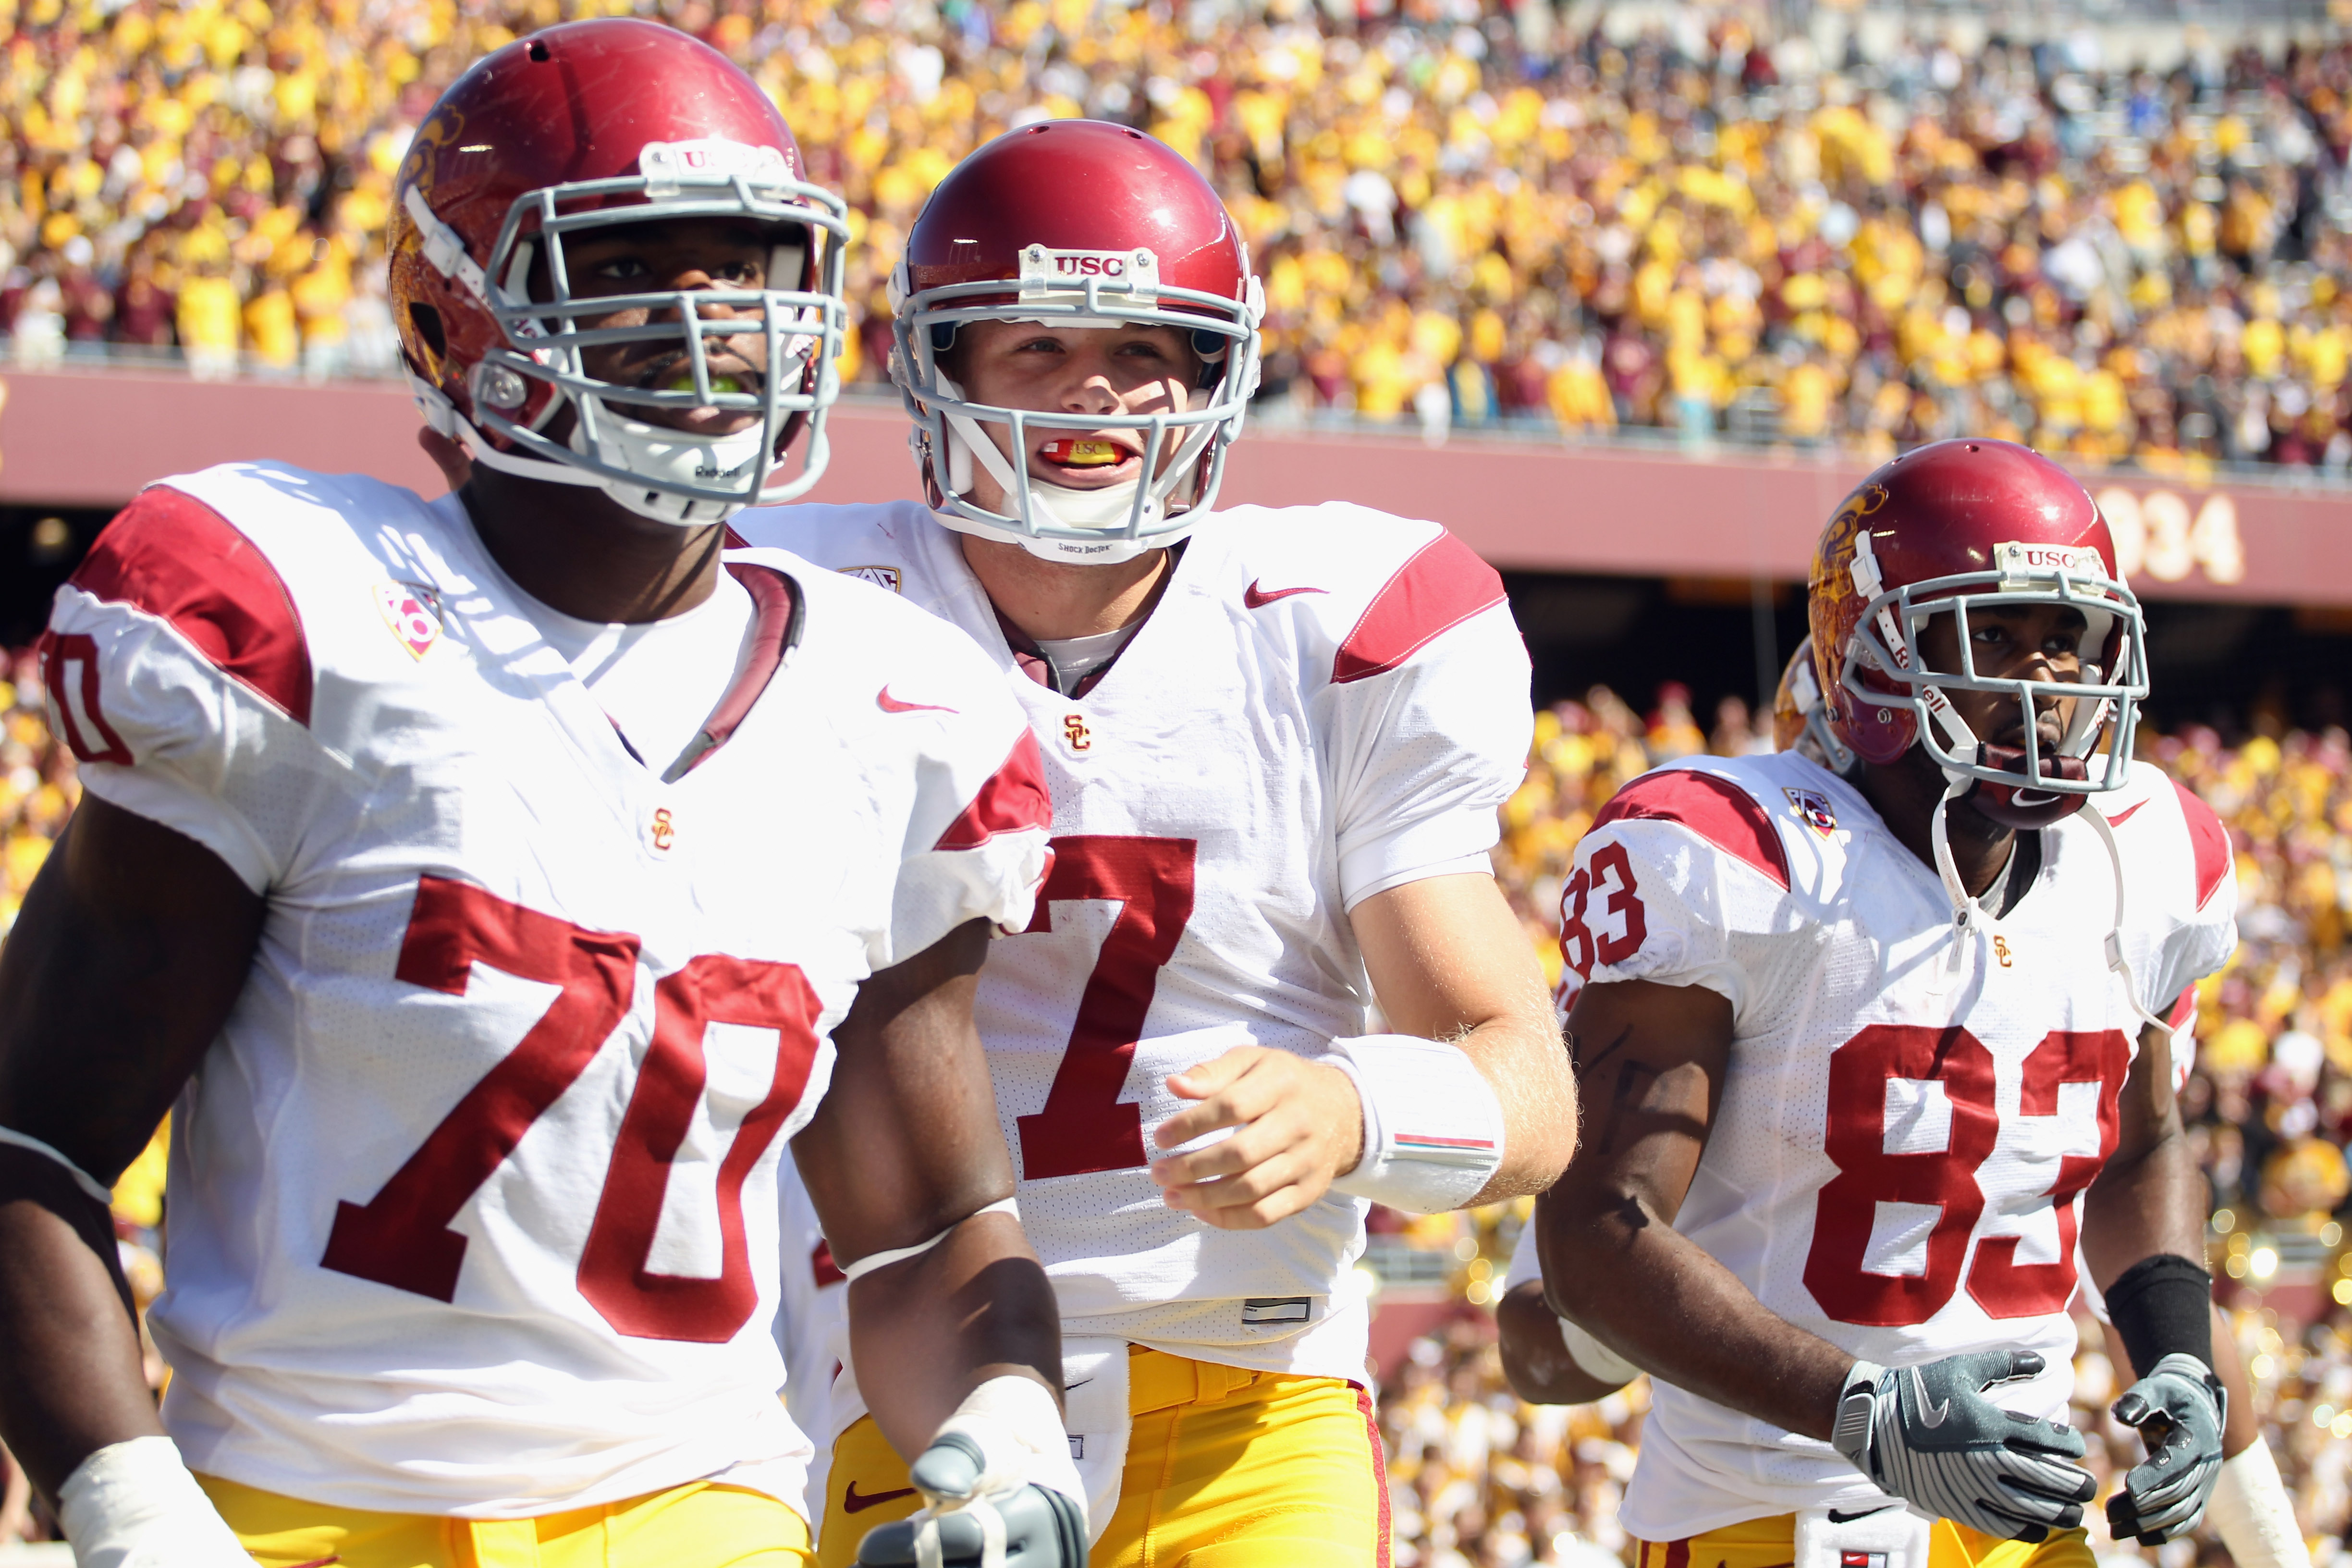 MINNEAPOLIS - SEPTEMBER 18:  Quarterback Matt Barkley #7 of the USC Trojans, flanked by Tyron Smith #70 and Ronald Johnson #83, runs off the field after the Trojans scored a touchdown during the first half of the game against the Minnesota Golden Gophers